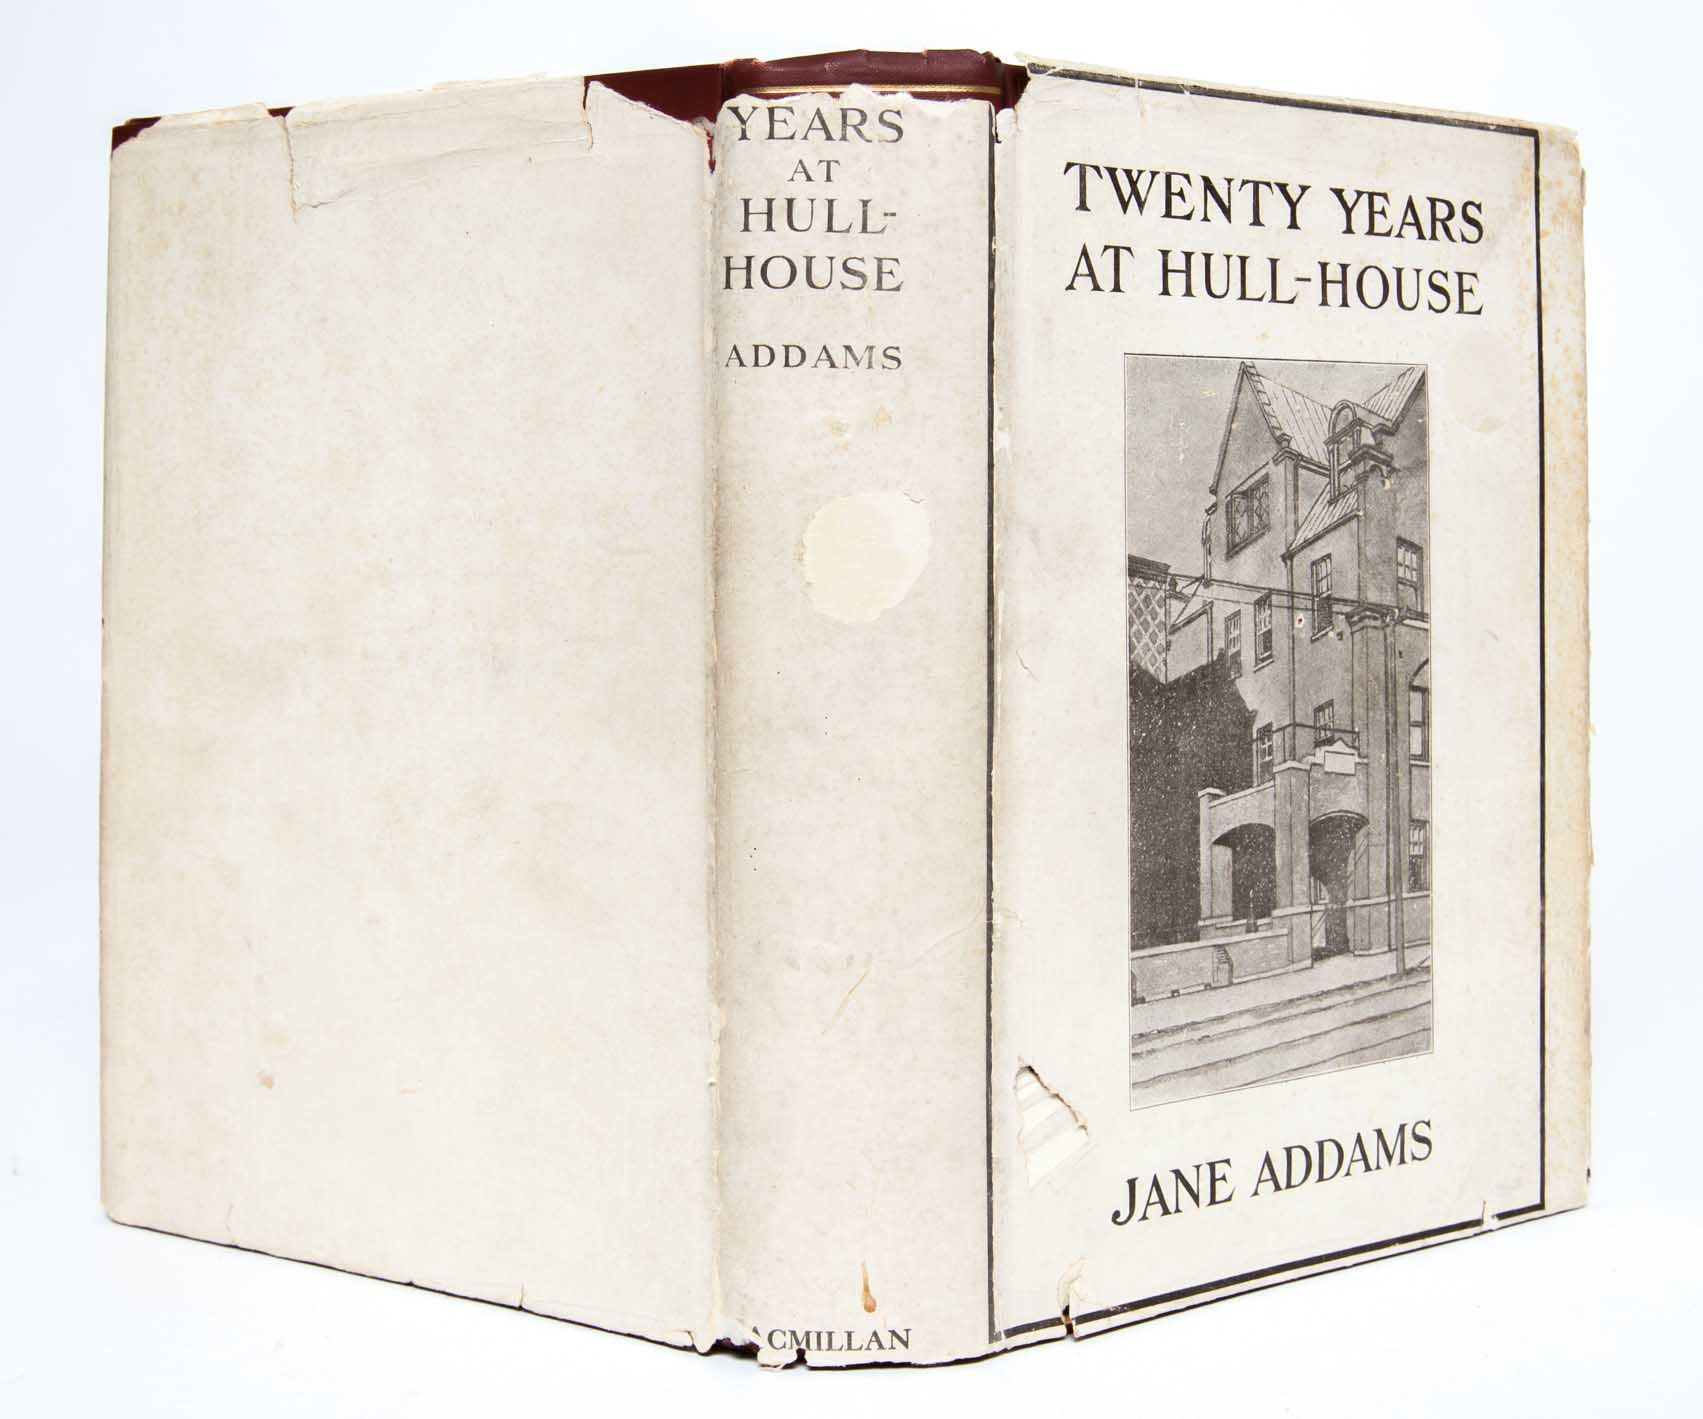 an analysis of twenty years at hull house by jane addams Essays related to jane addams and the hull house 1 twenty years at hull-house jane addams the book twenty years at hull-house is the reminiscences of an.